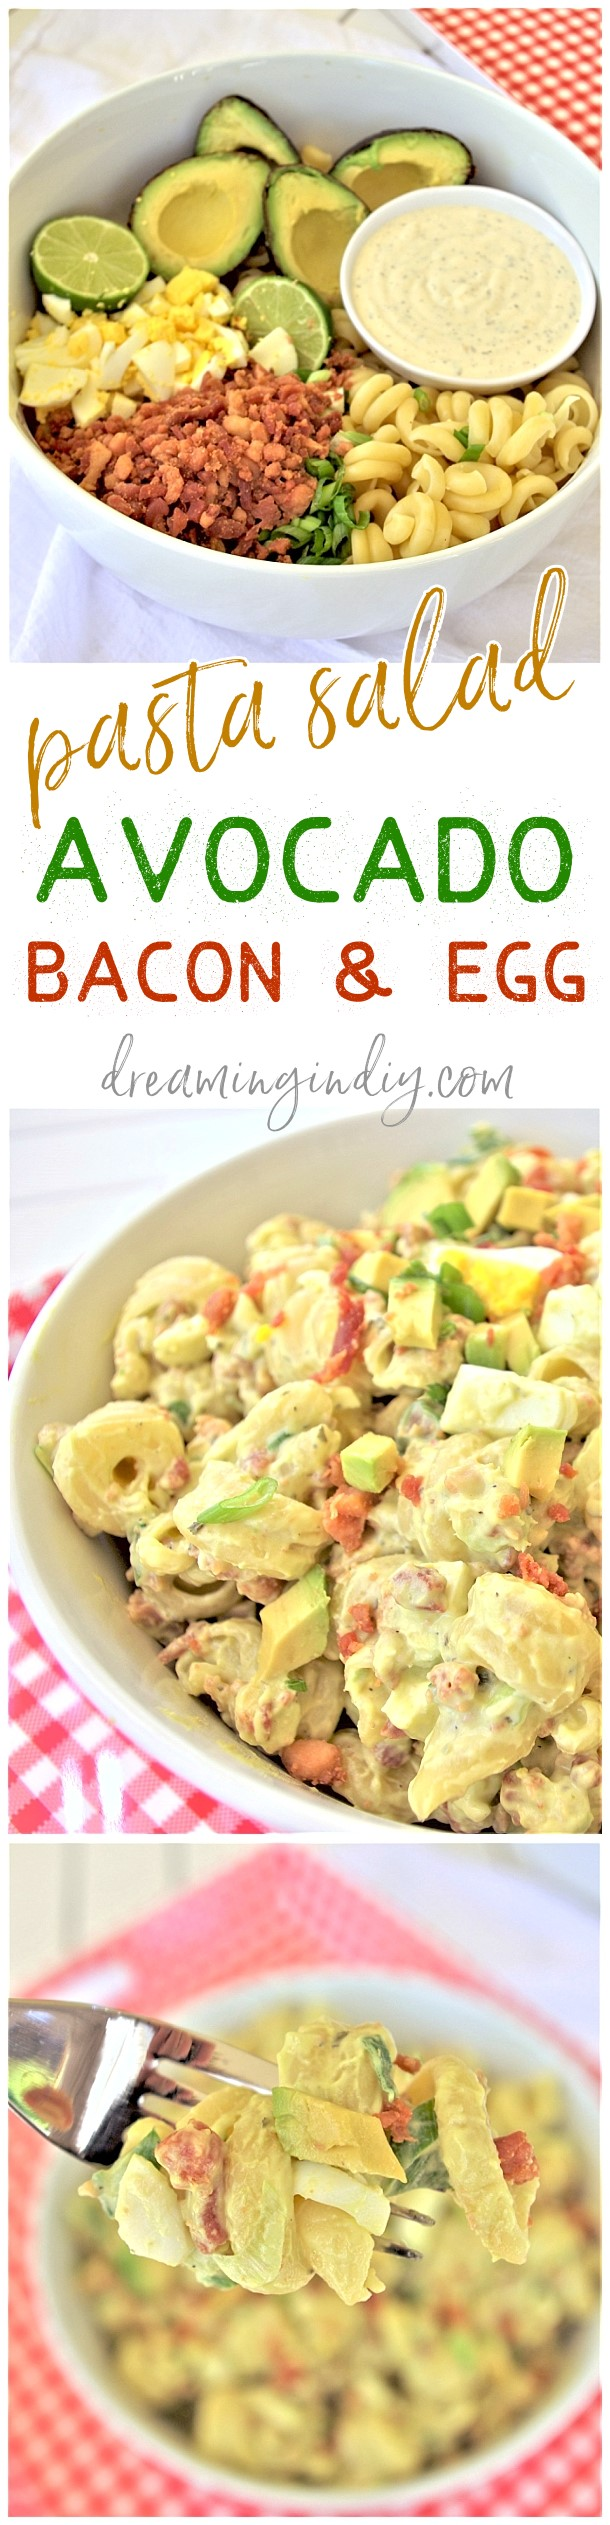 Avocado Egg And Bacon Pasta Salad Side Dish Recipe Via Dreaming In DIY